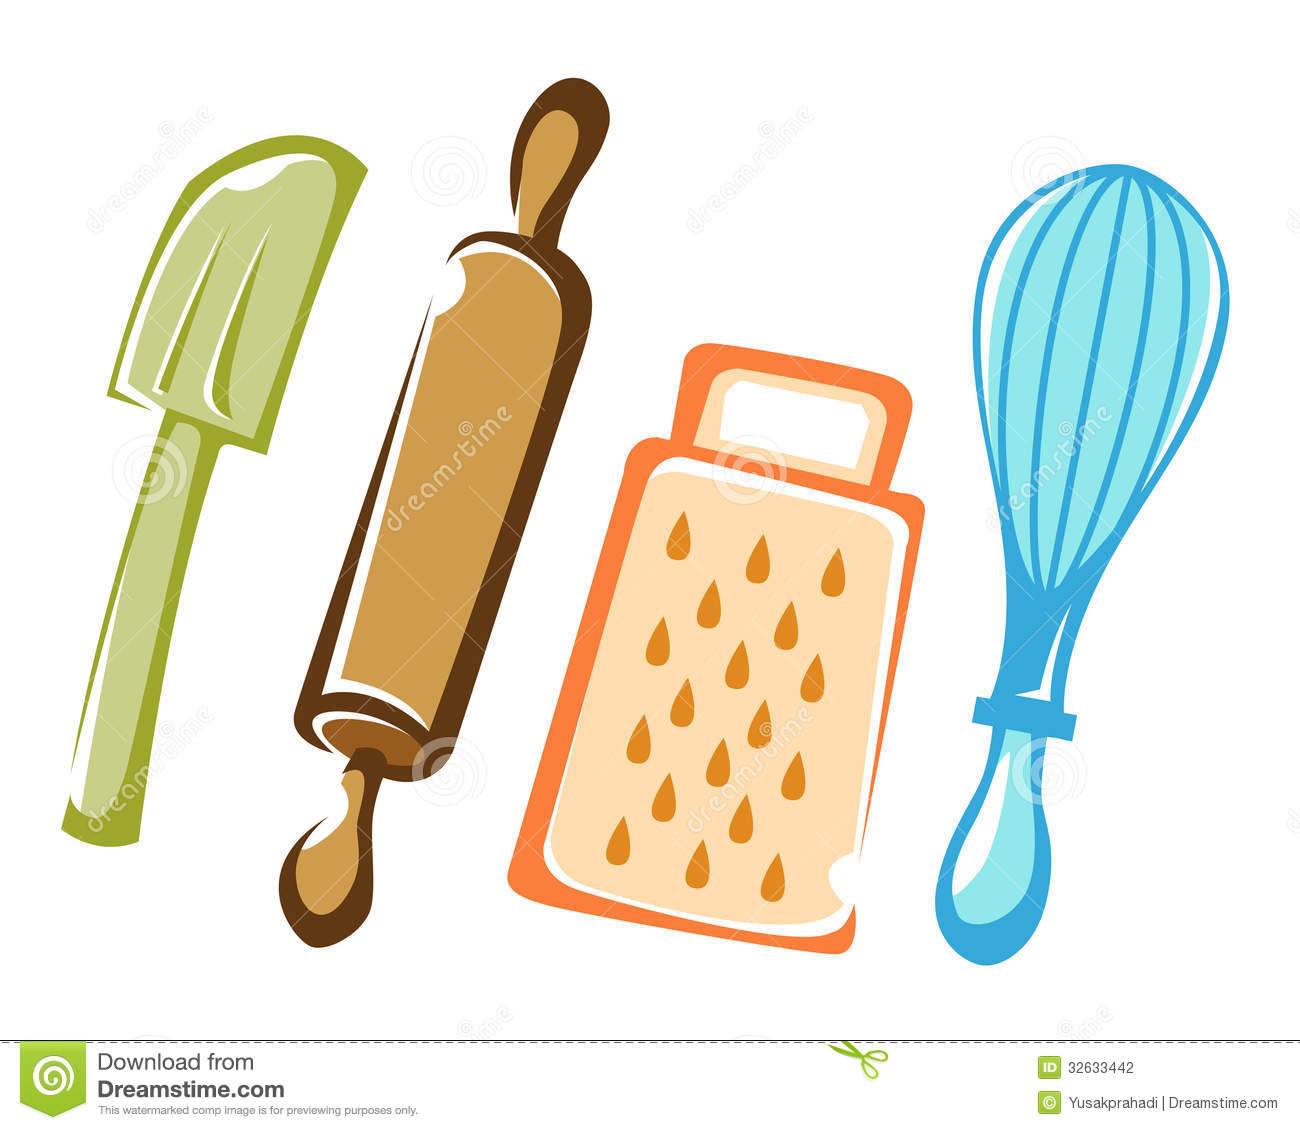 Go Back > Images For > Clip Art Cooking Utensils